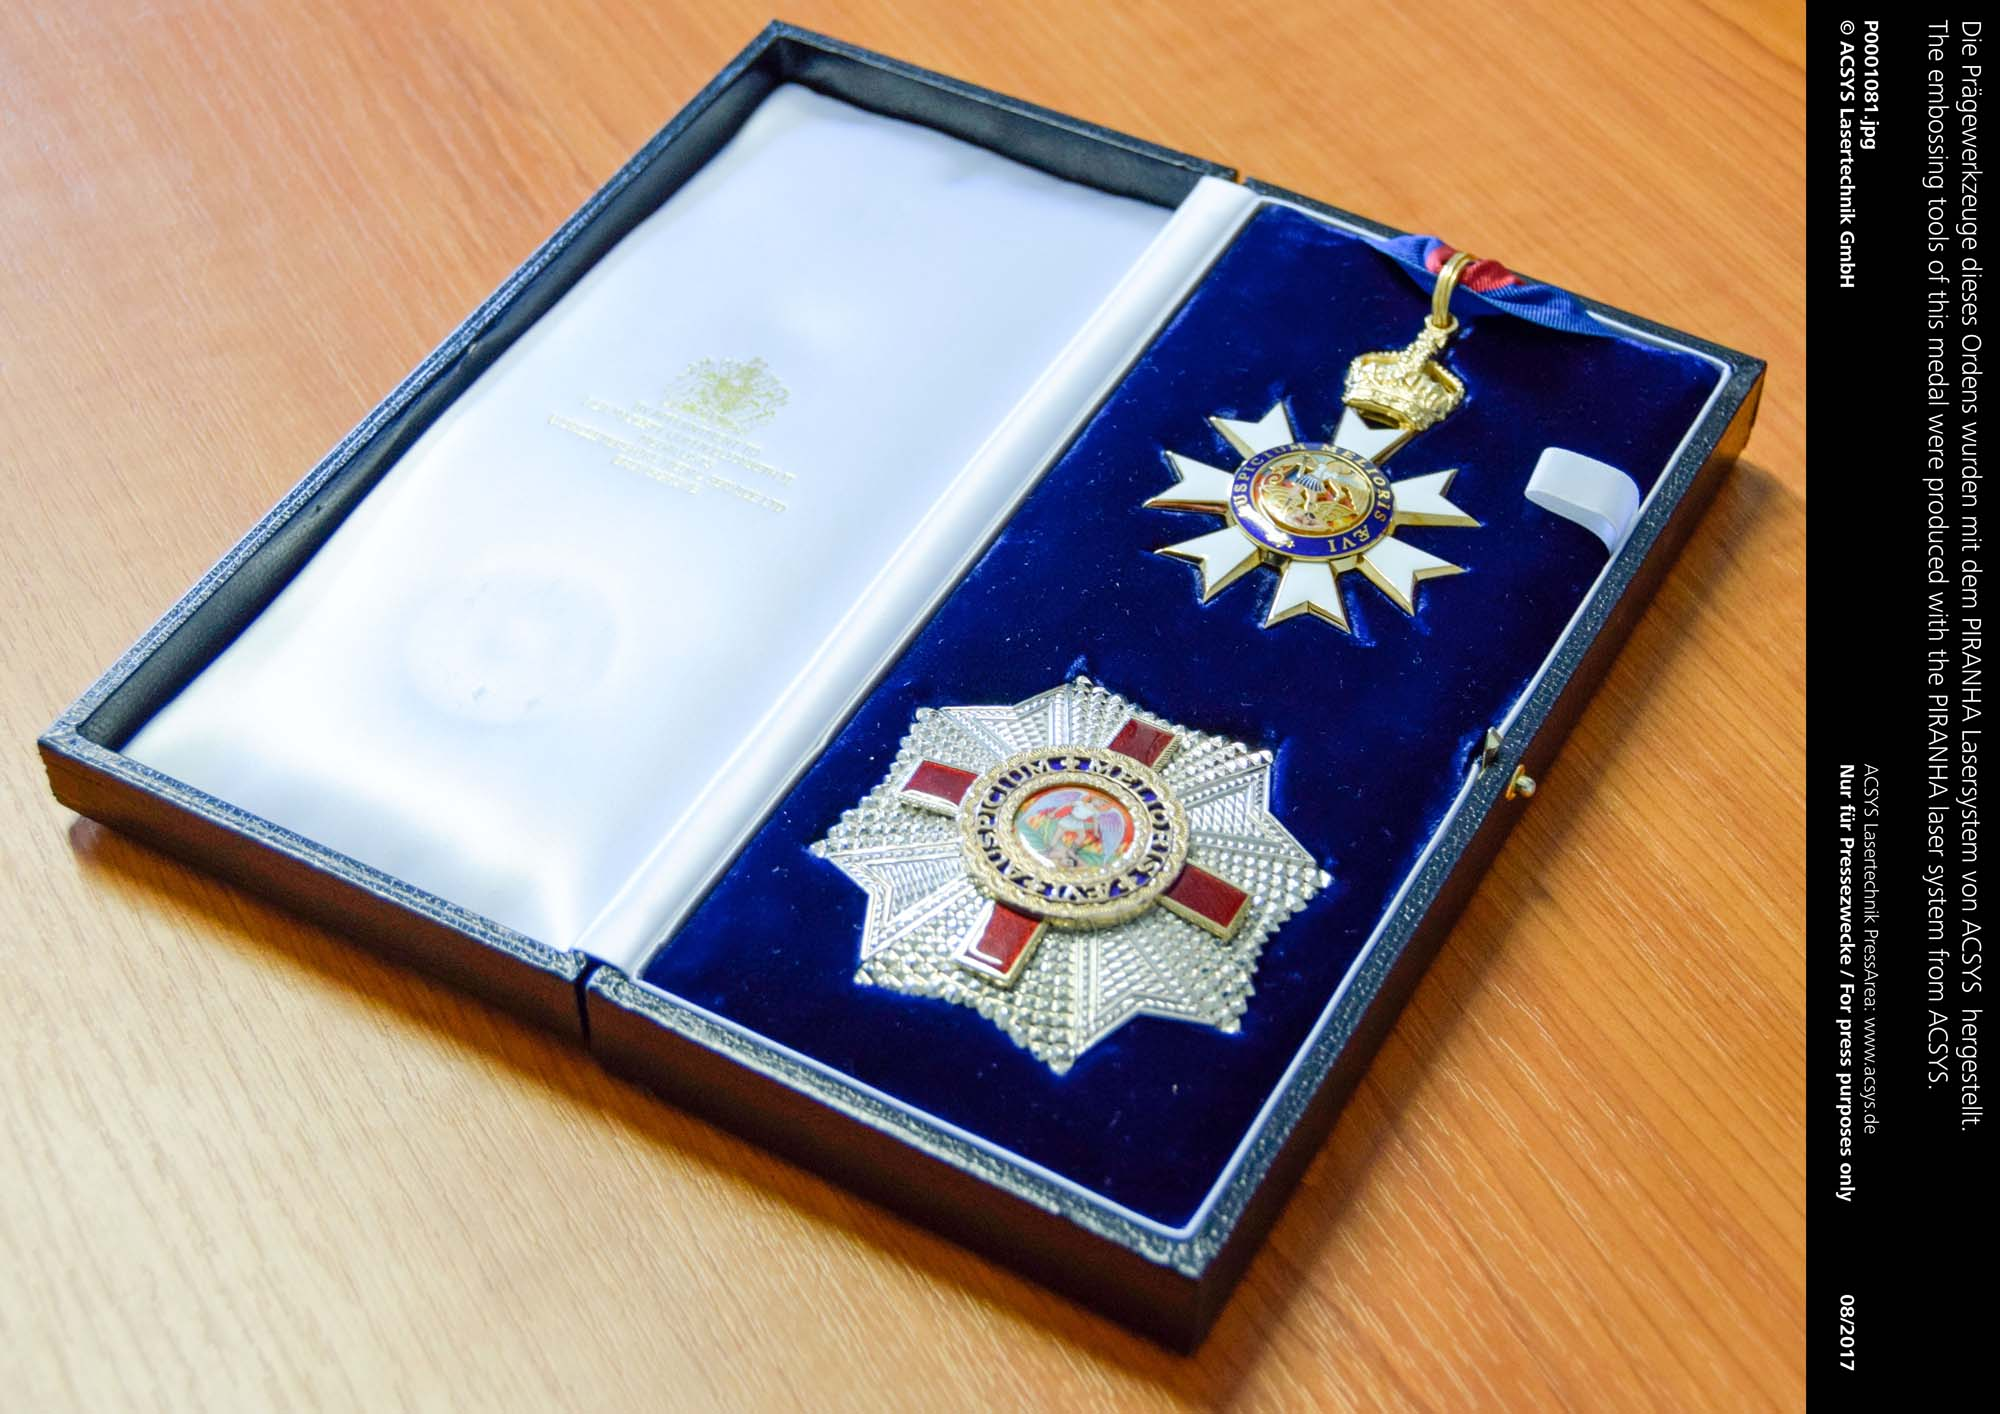 The embossing tools of this medal were produced with the PIRANHA laser system from ACSYS.